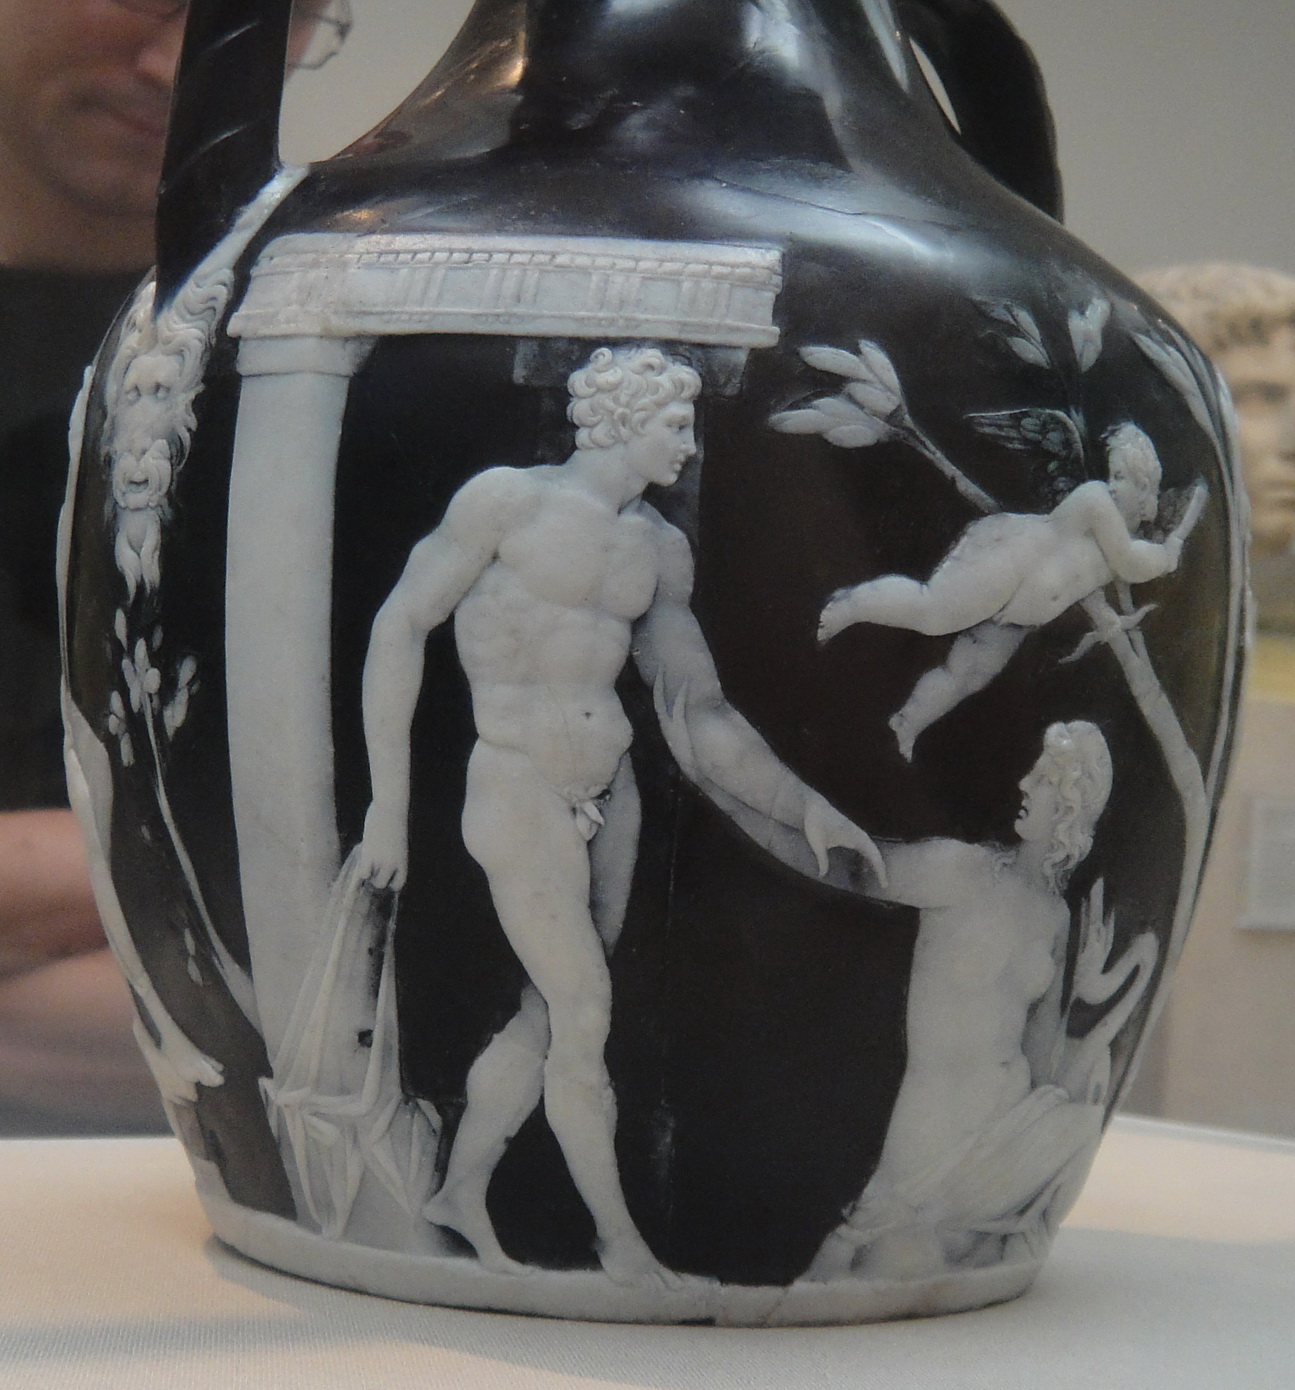 Portland vase notes on the cultured life a piece of virtuouso roman glass cameo unmatched by modern efforts to reproduce it the northwood vase at the corning cracked in firing recorded since reviewsmspy